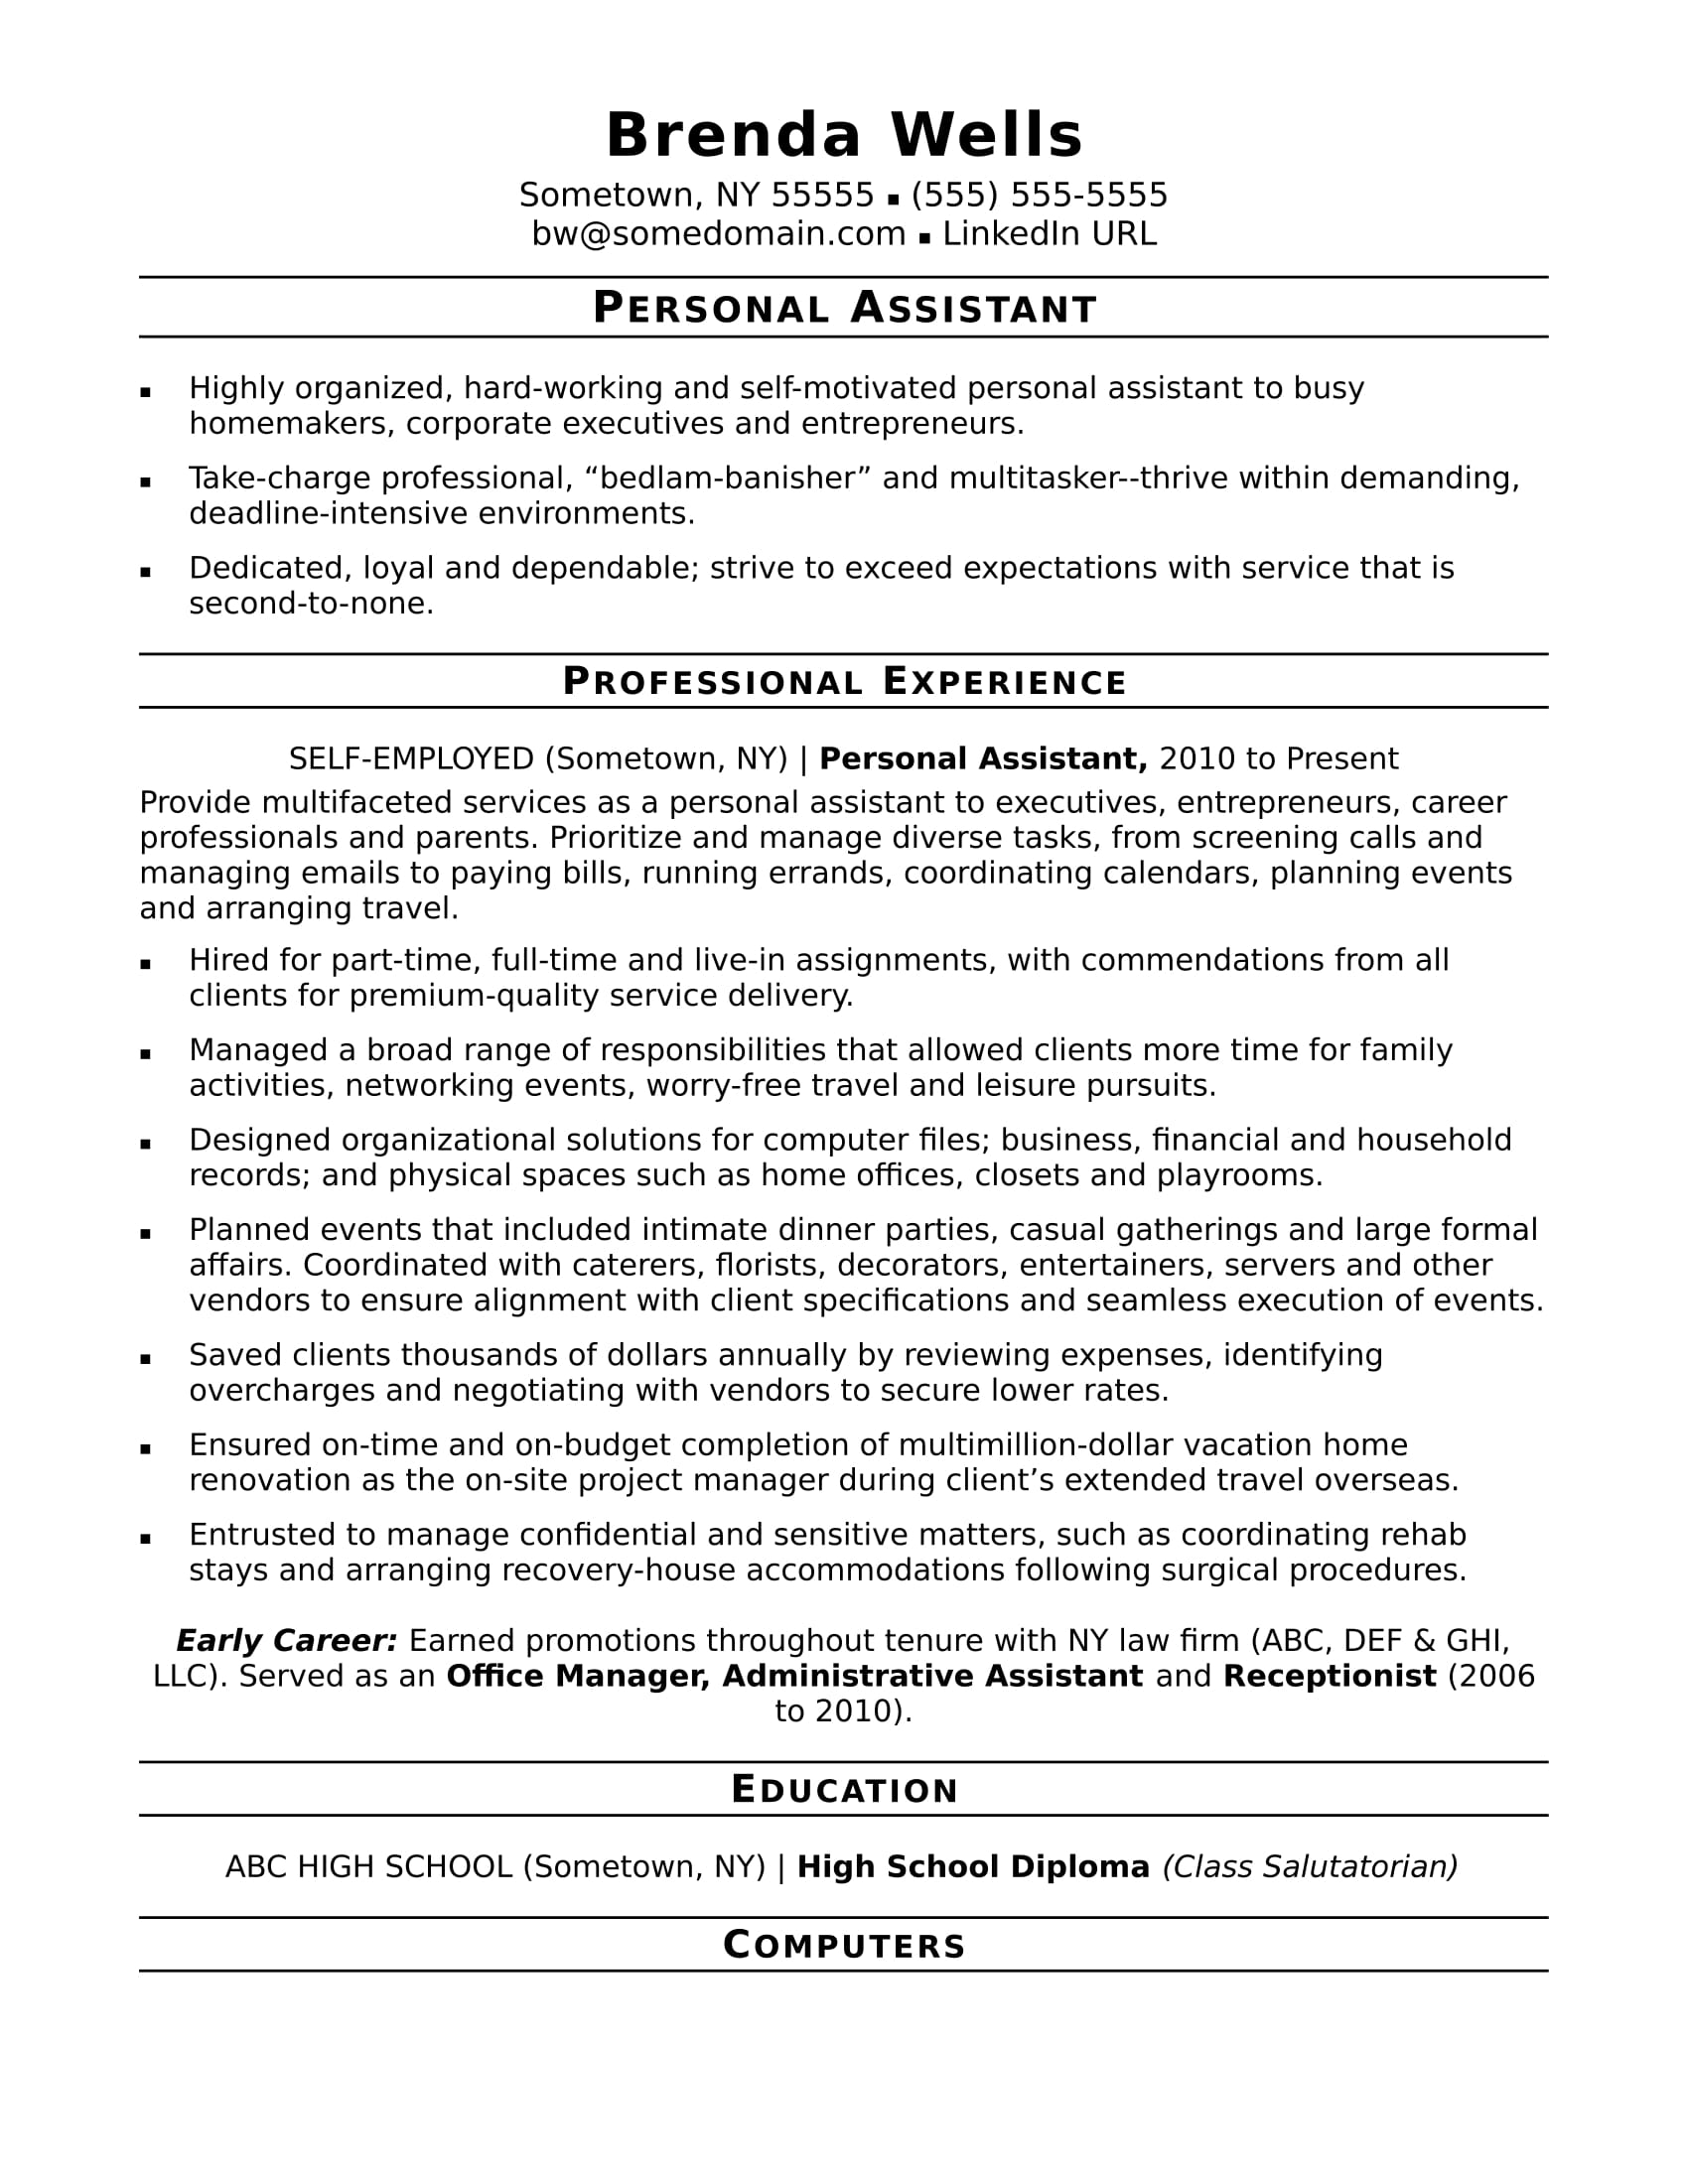 personal assistant resume sample - Personal Resume Samples